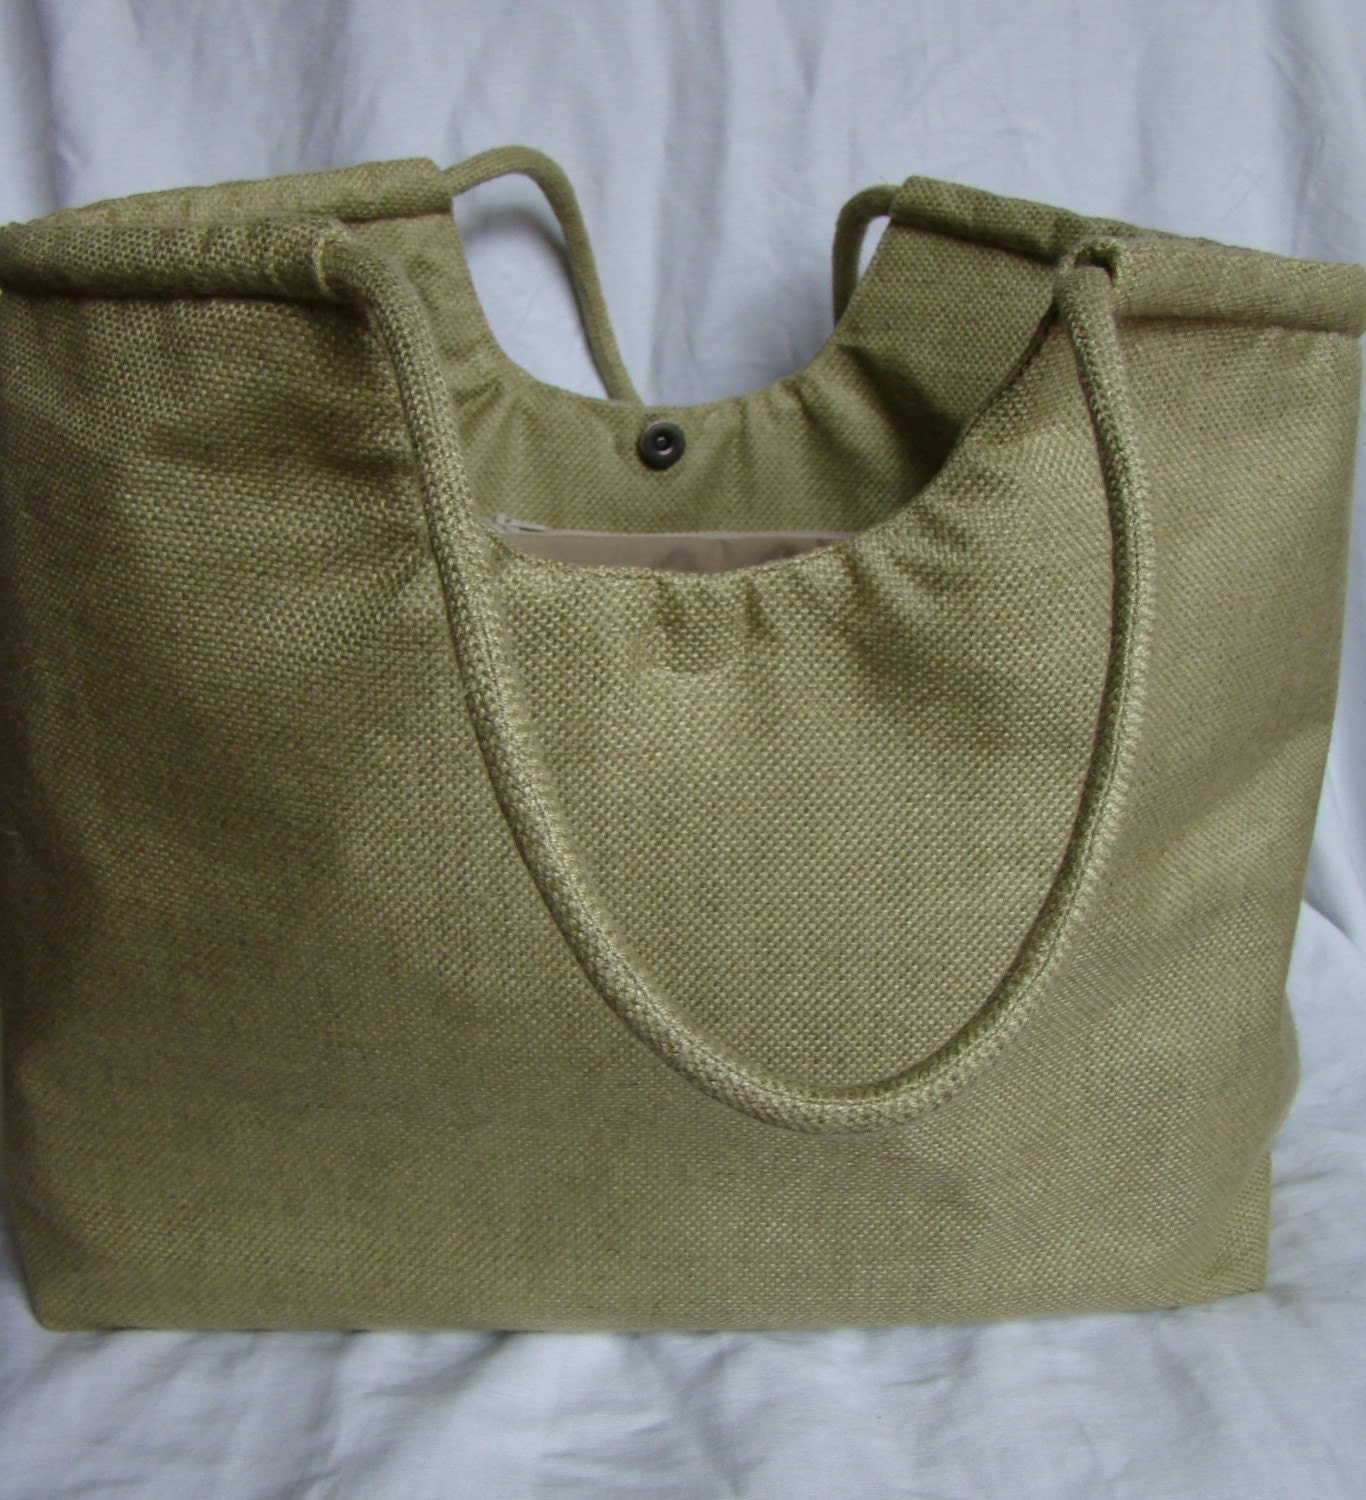 Sage Green Celeste Bag with matching Fob